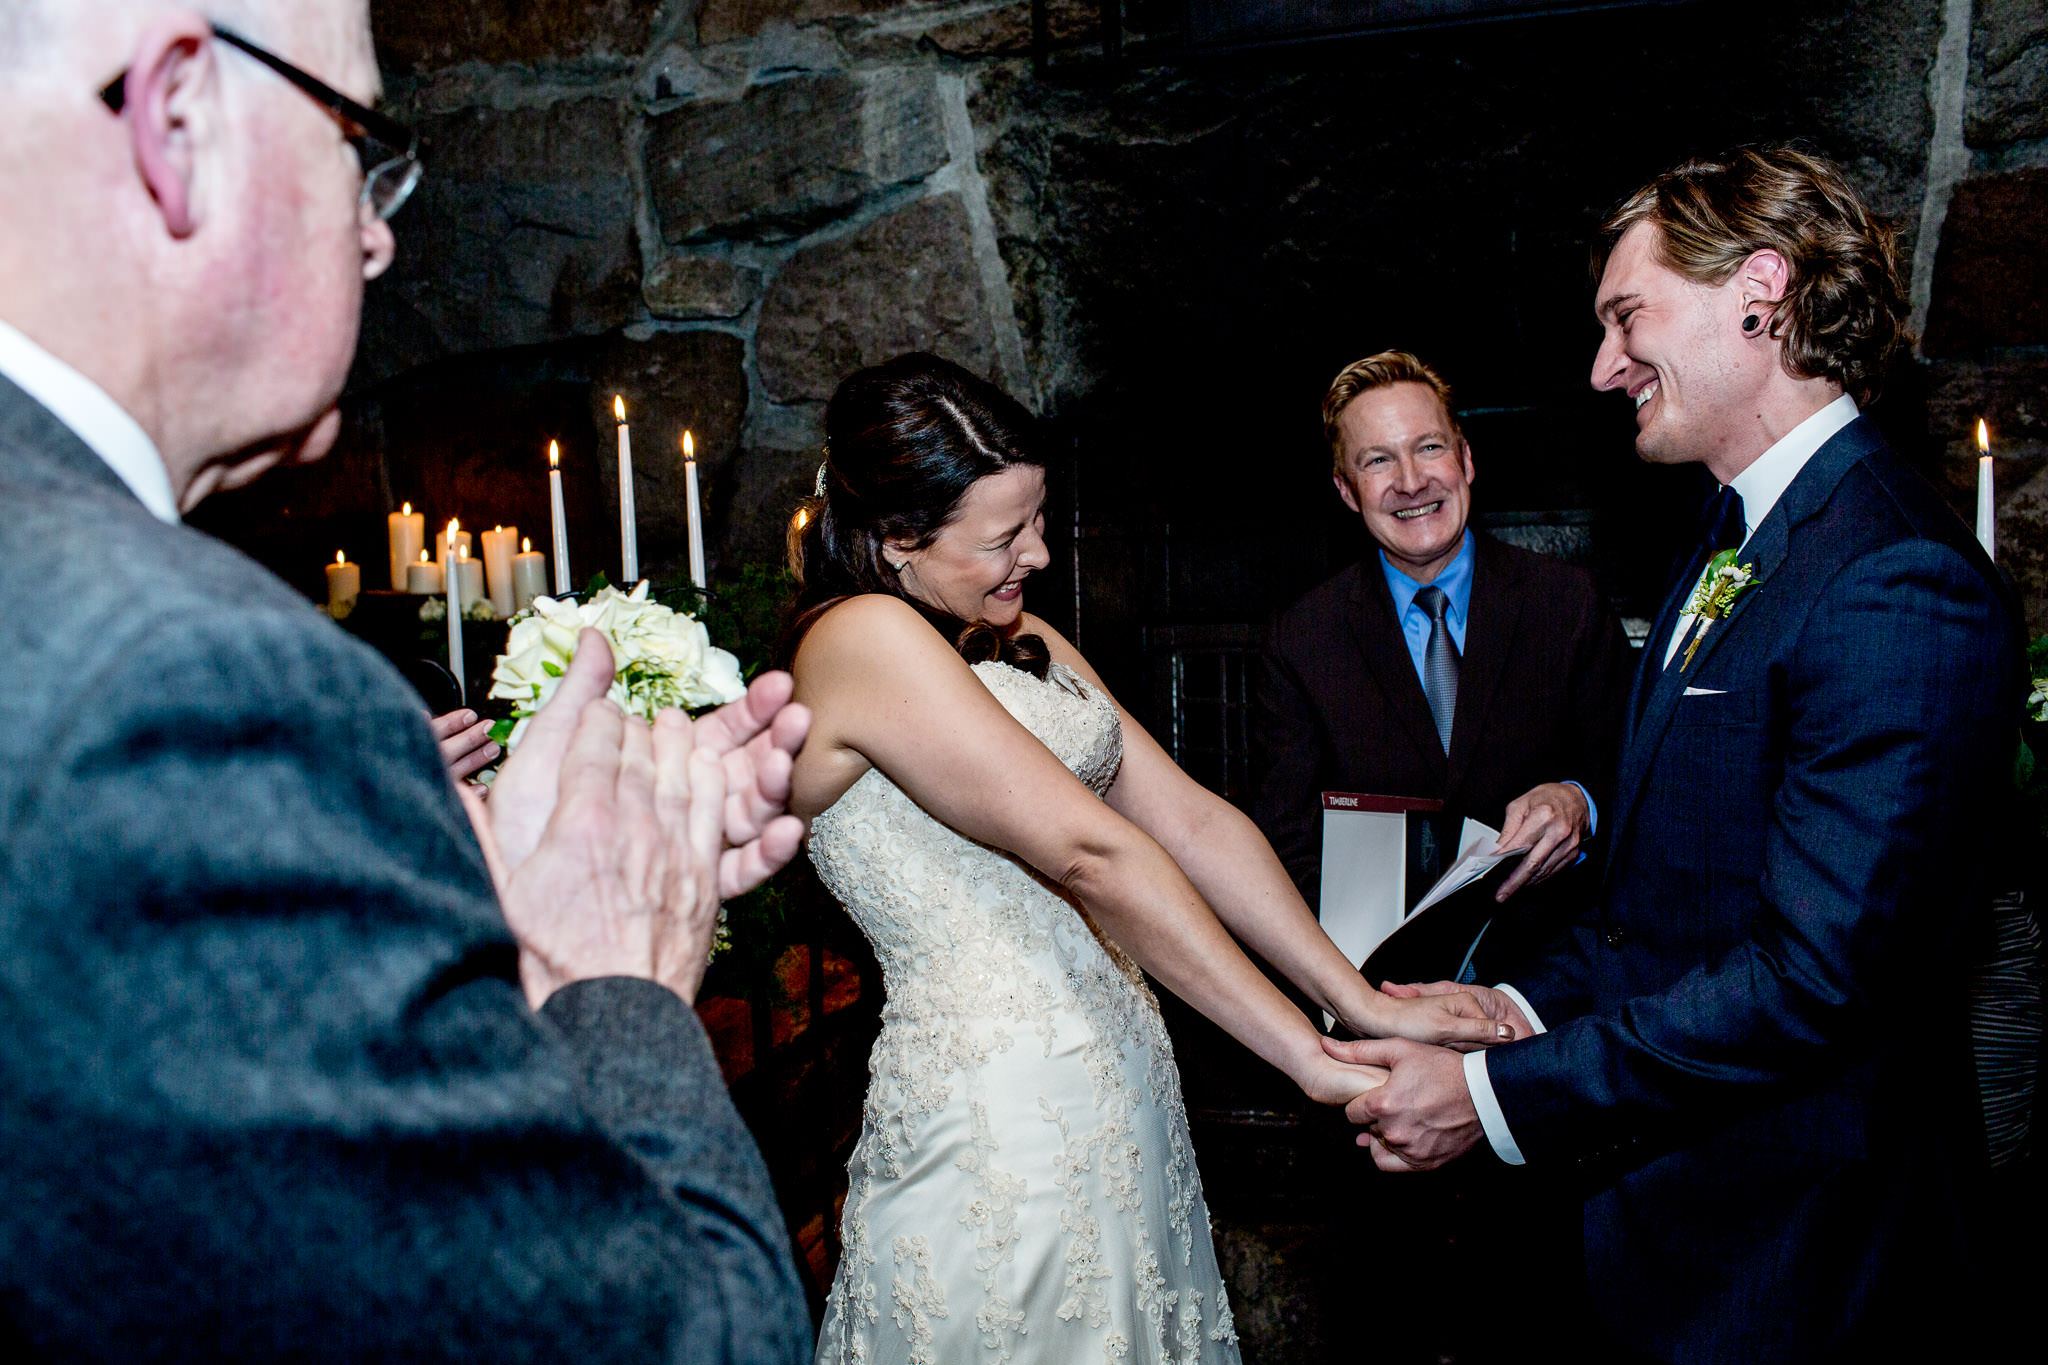 Wedding ceremony at Silcox Hut at Timberline Lodge